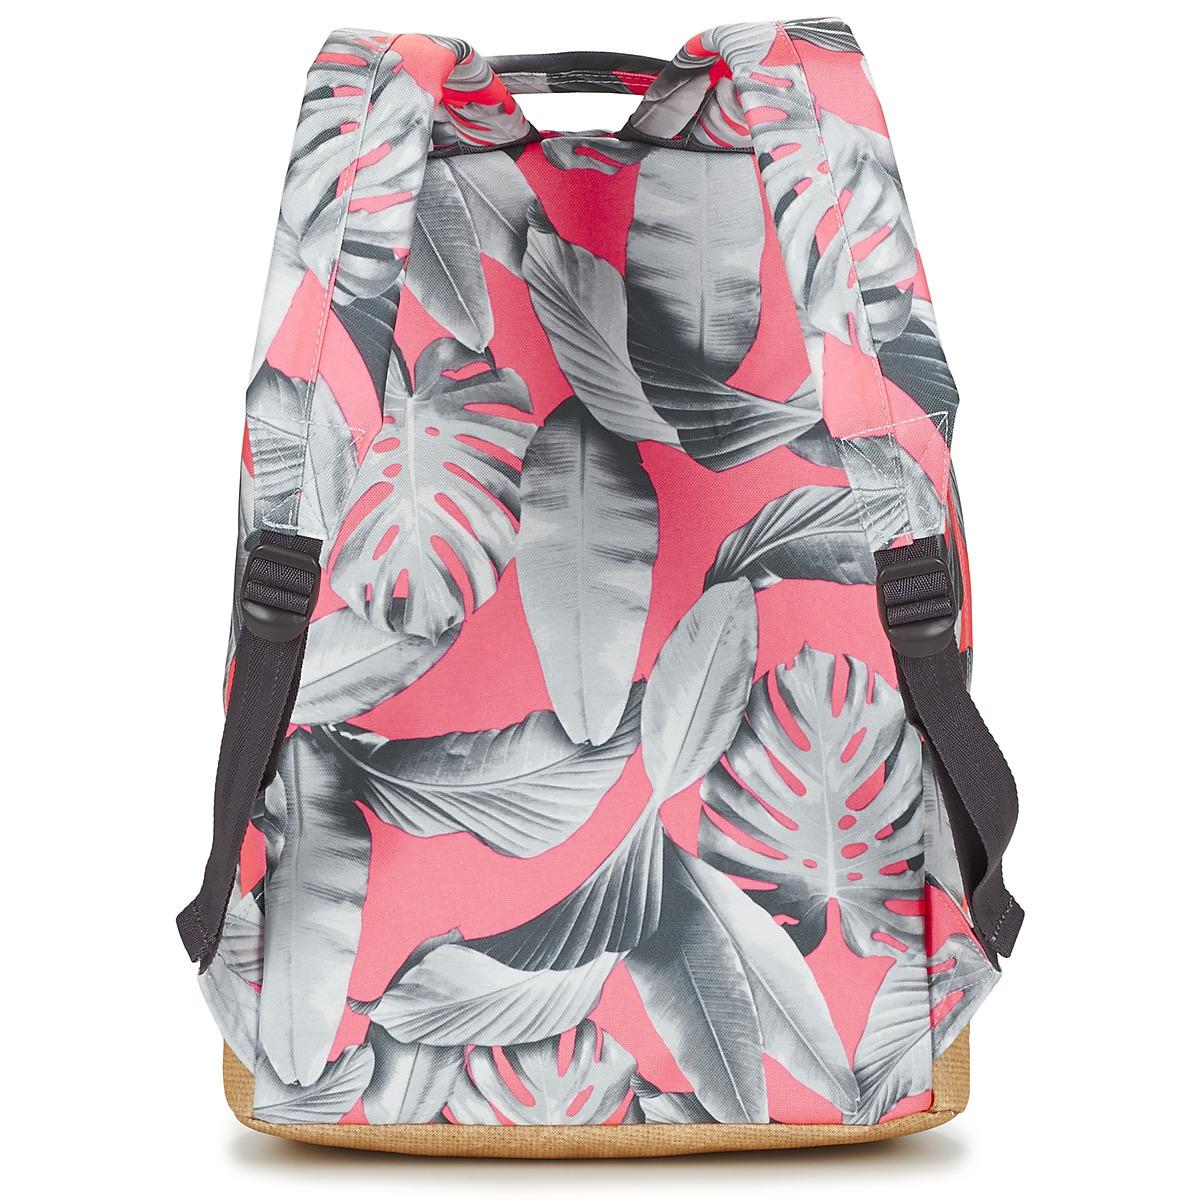 Rip Curl Synthetic Miami Vibes Dome Women's Backpack In Pink